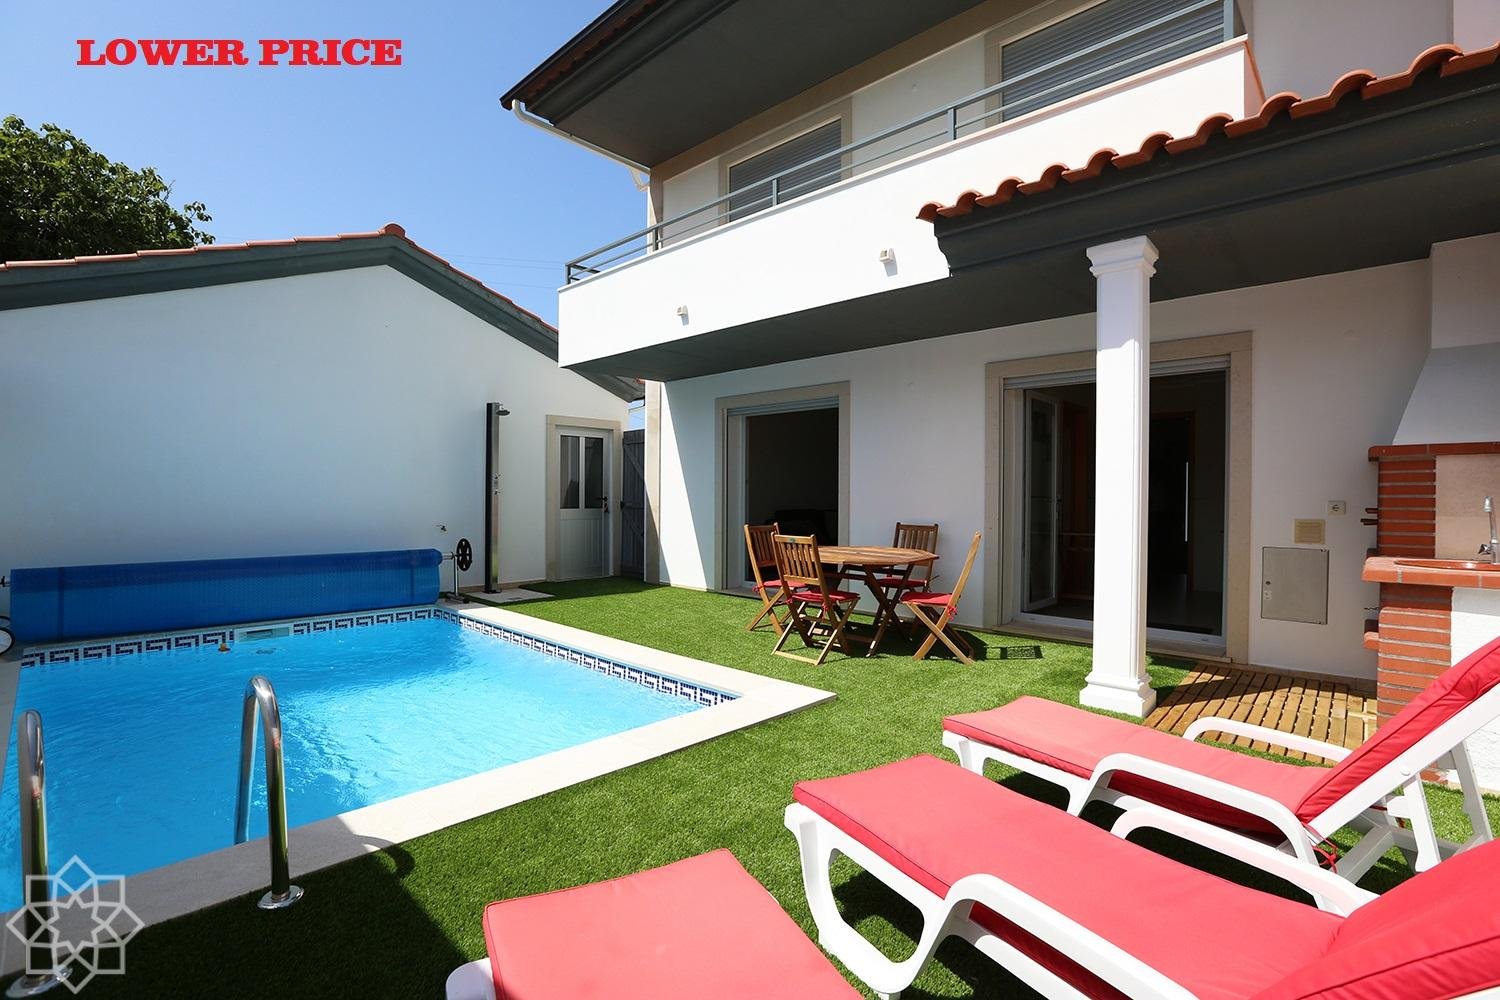 Semi-detached 3 bedroom villa with pool